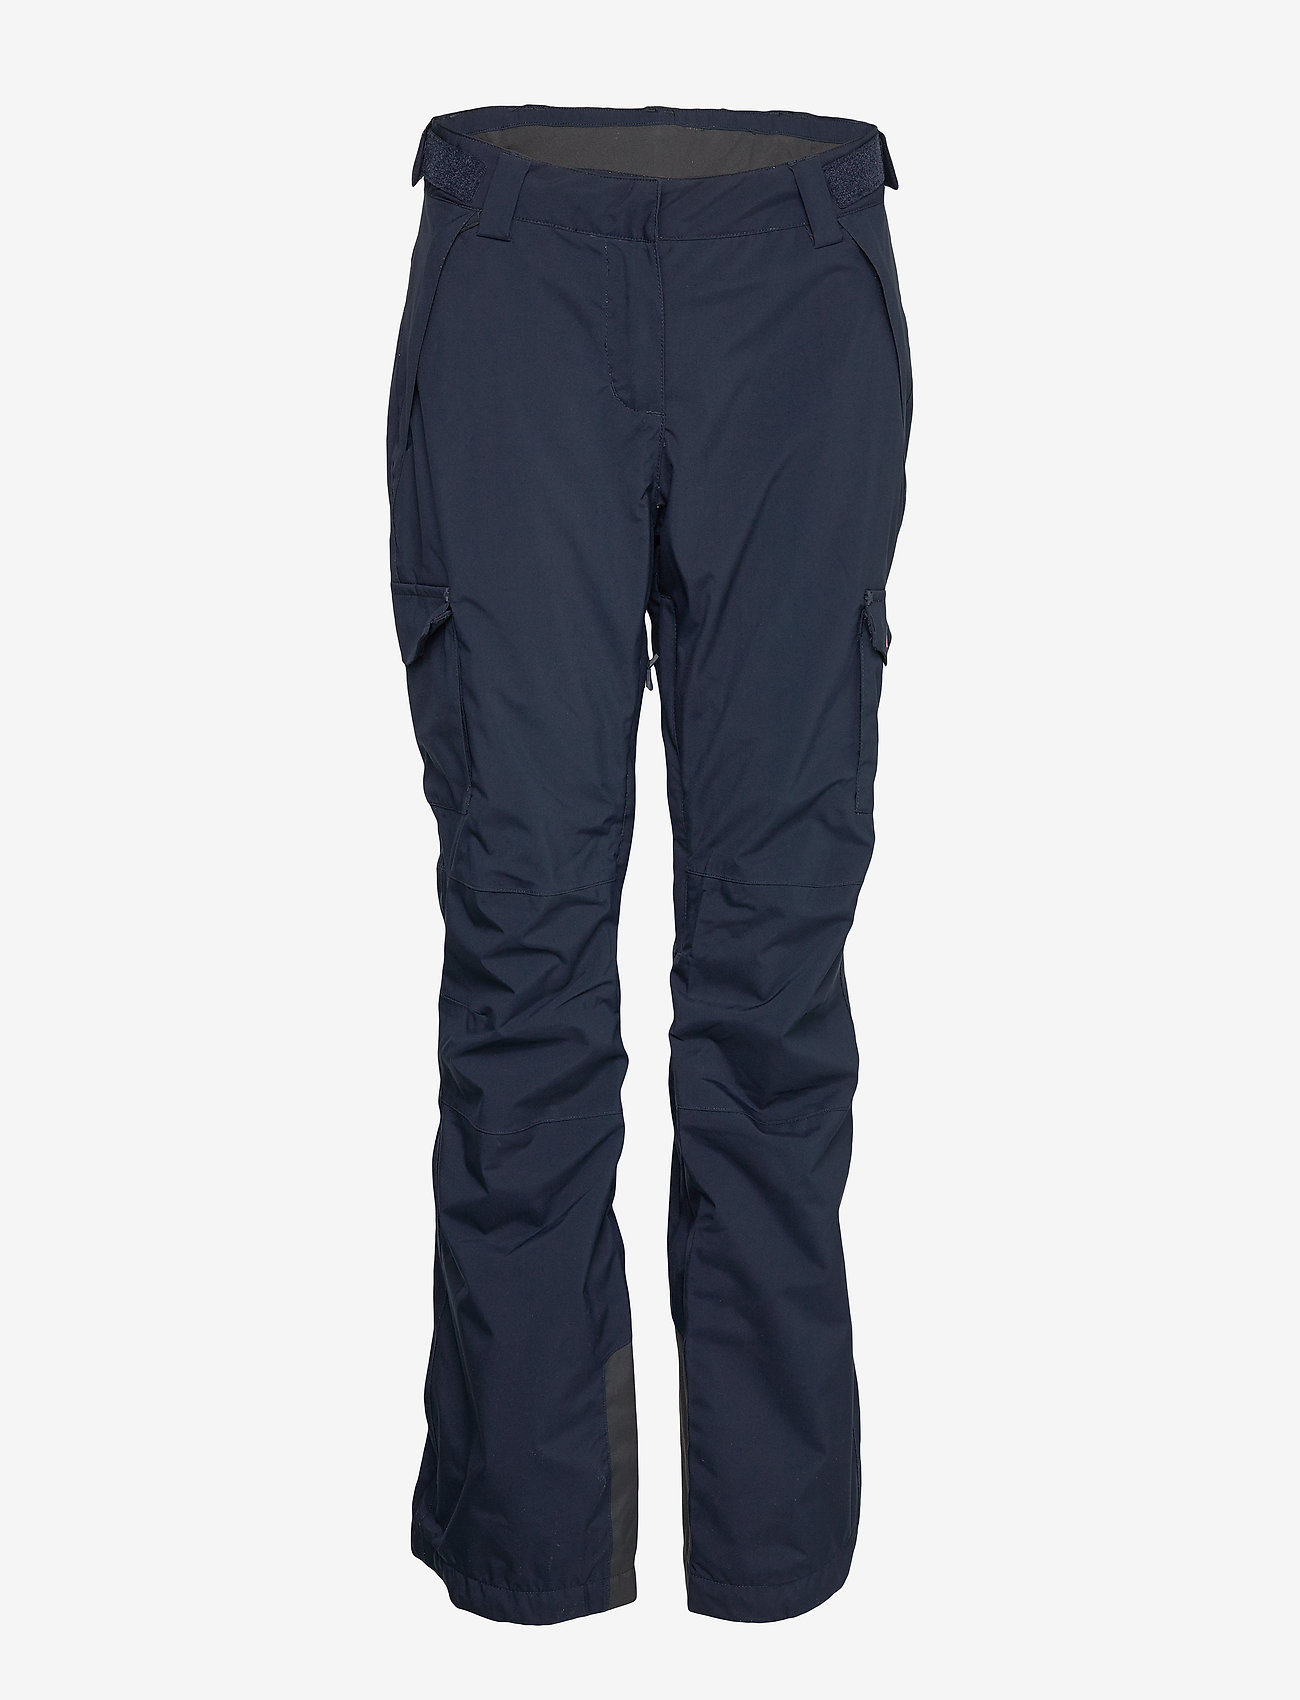 Helly Hansen - W SWITCH CARGO 2.0 PANT - insulated pants - navy - 1